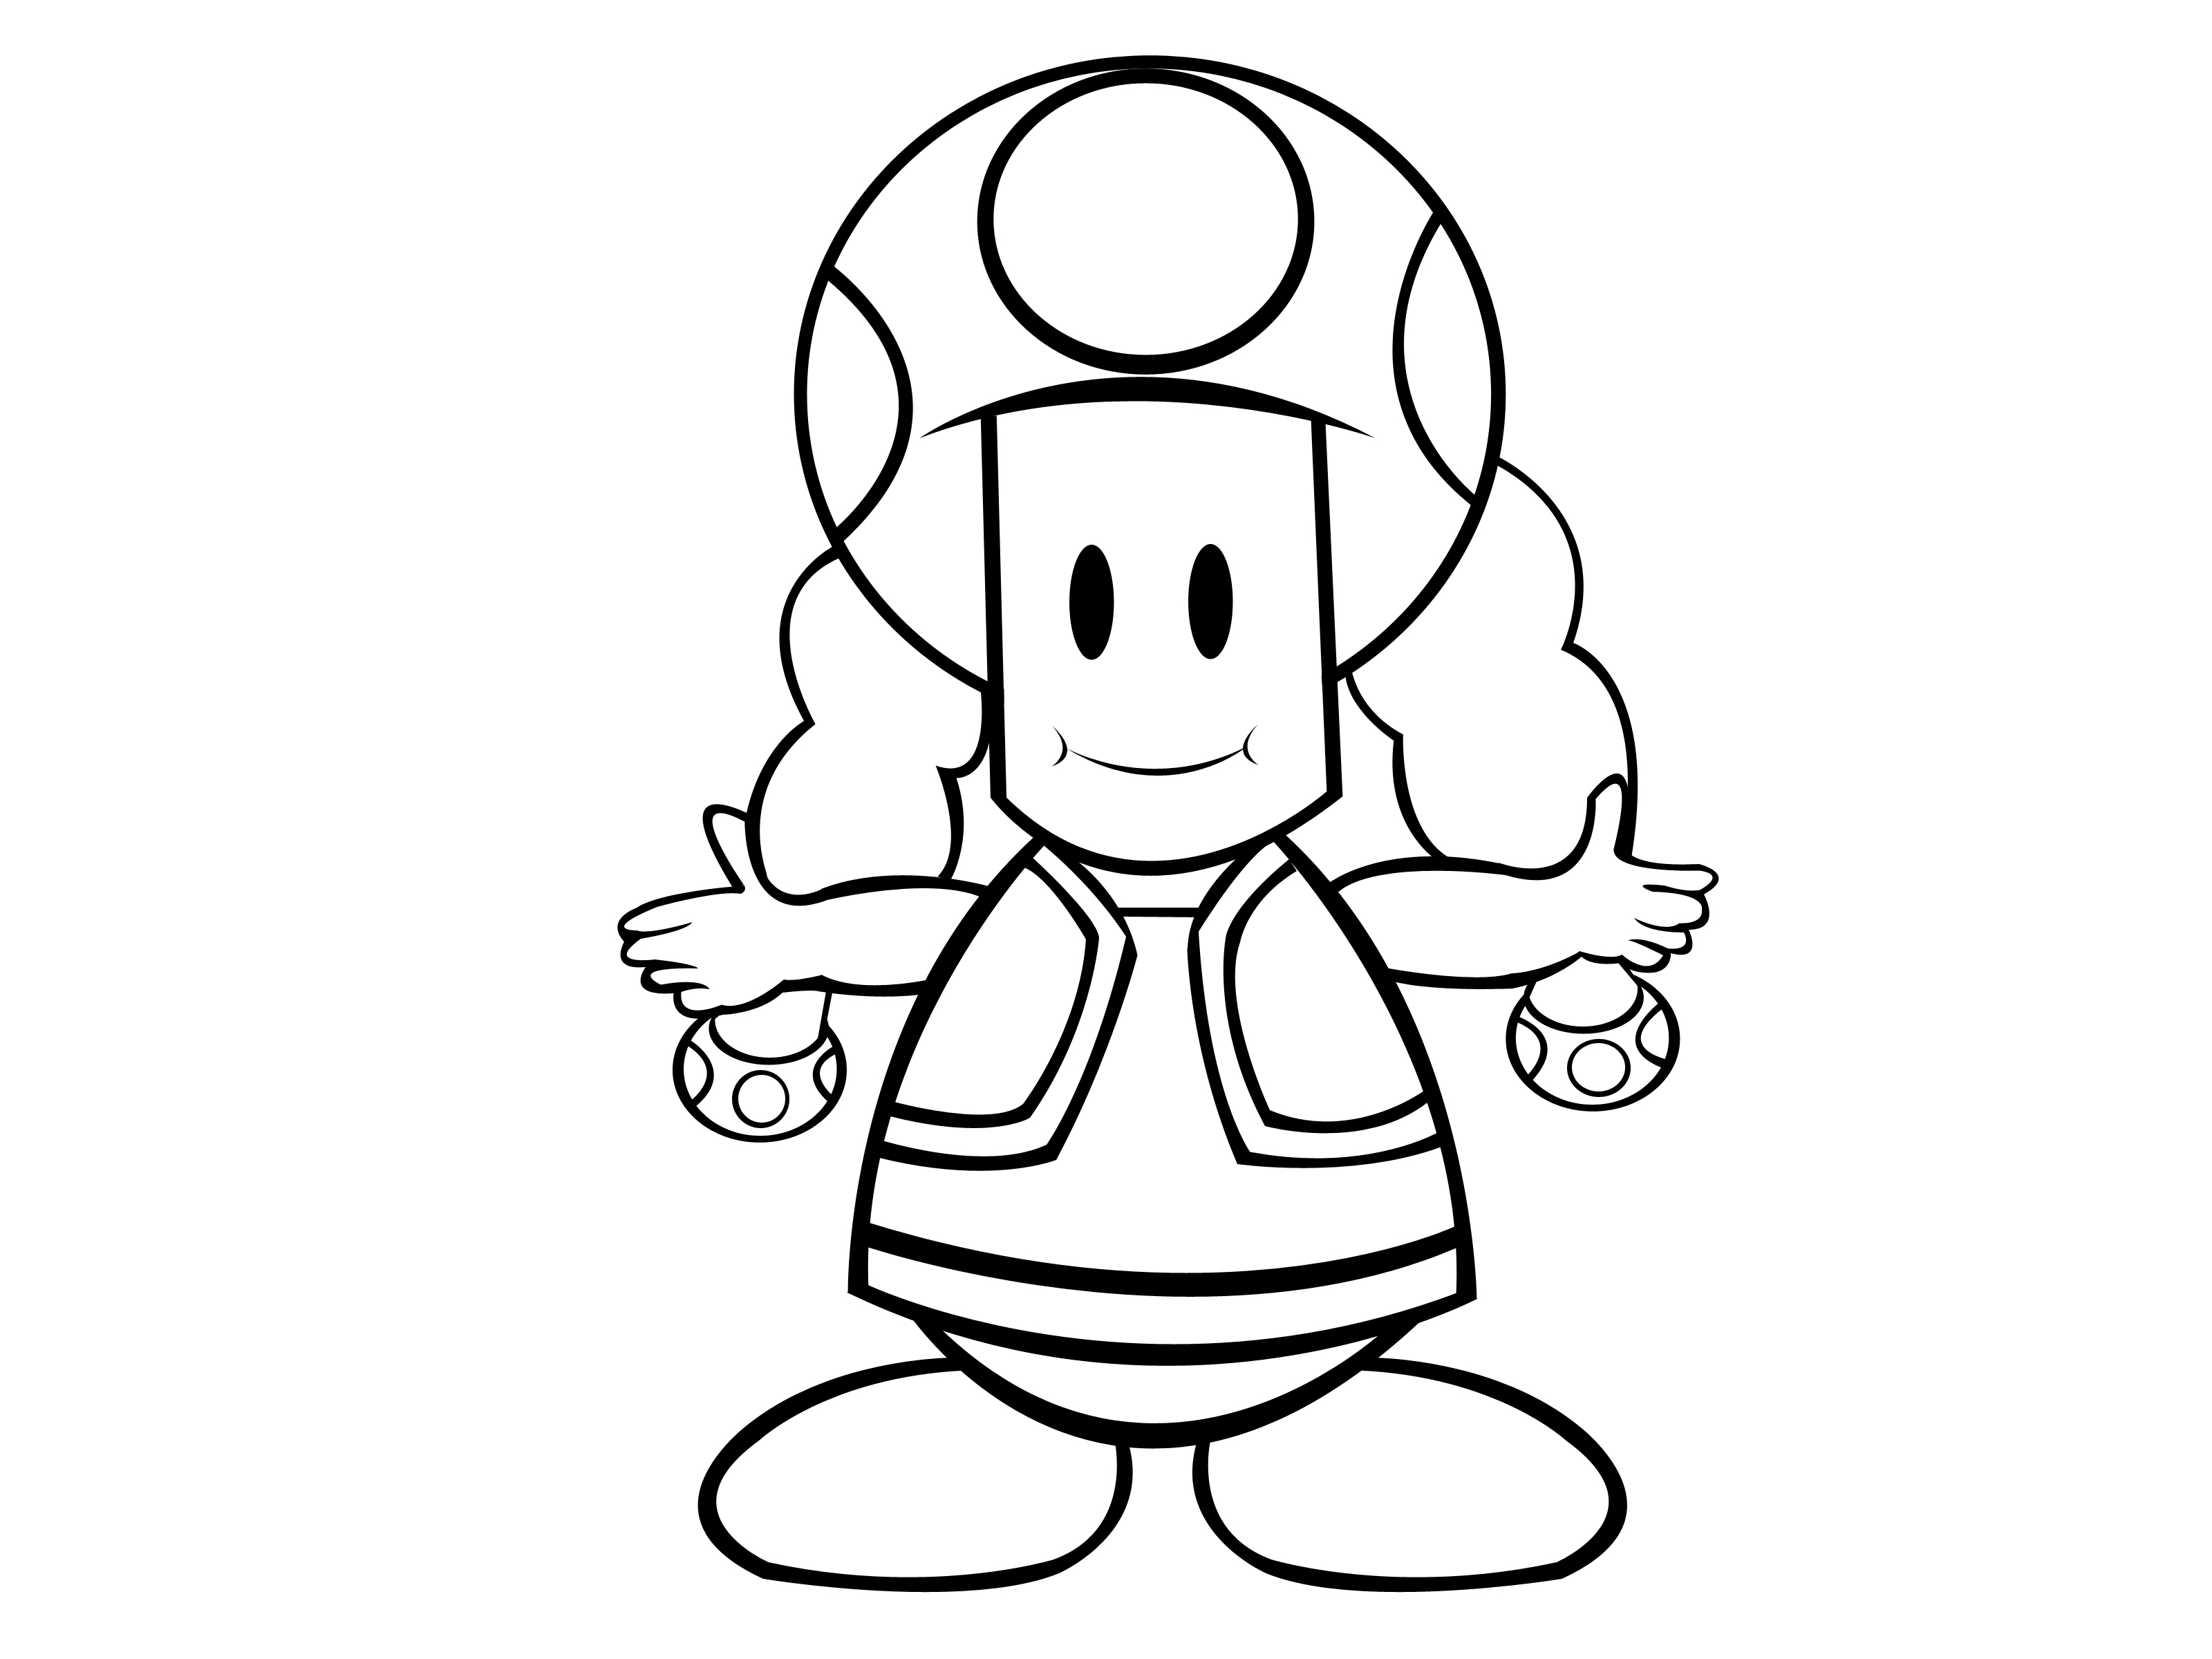 3200x2400 How To Draw Toadette From The Mario Games (With Pictures)